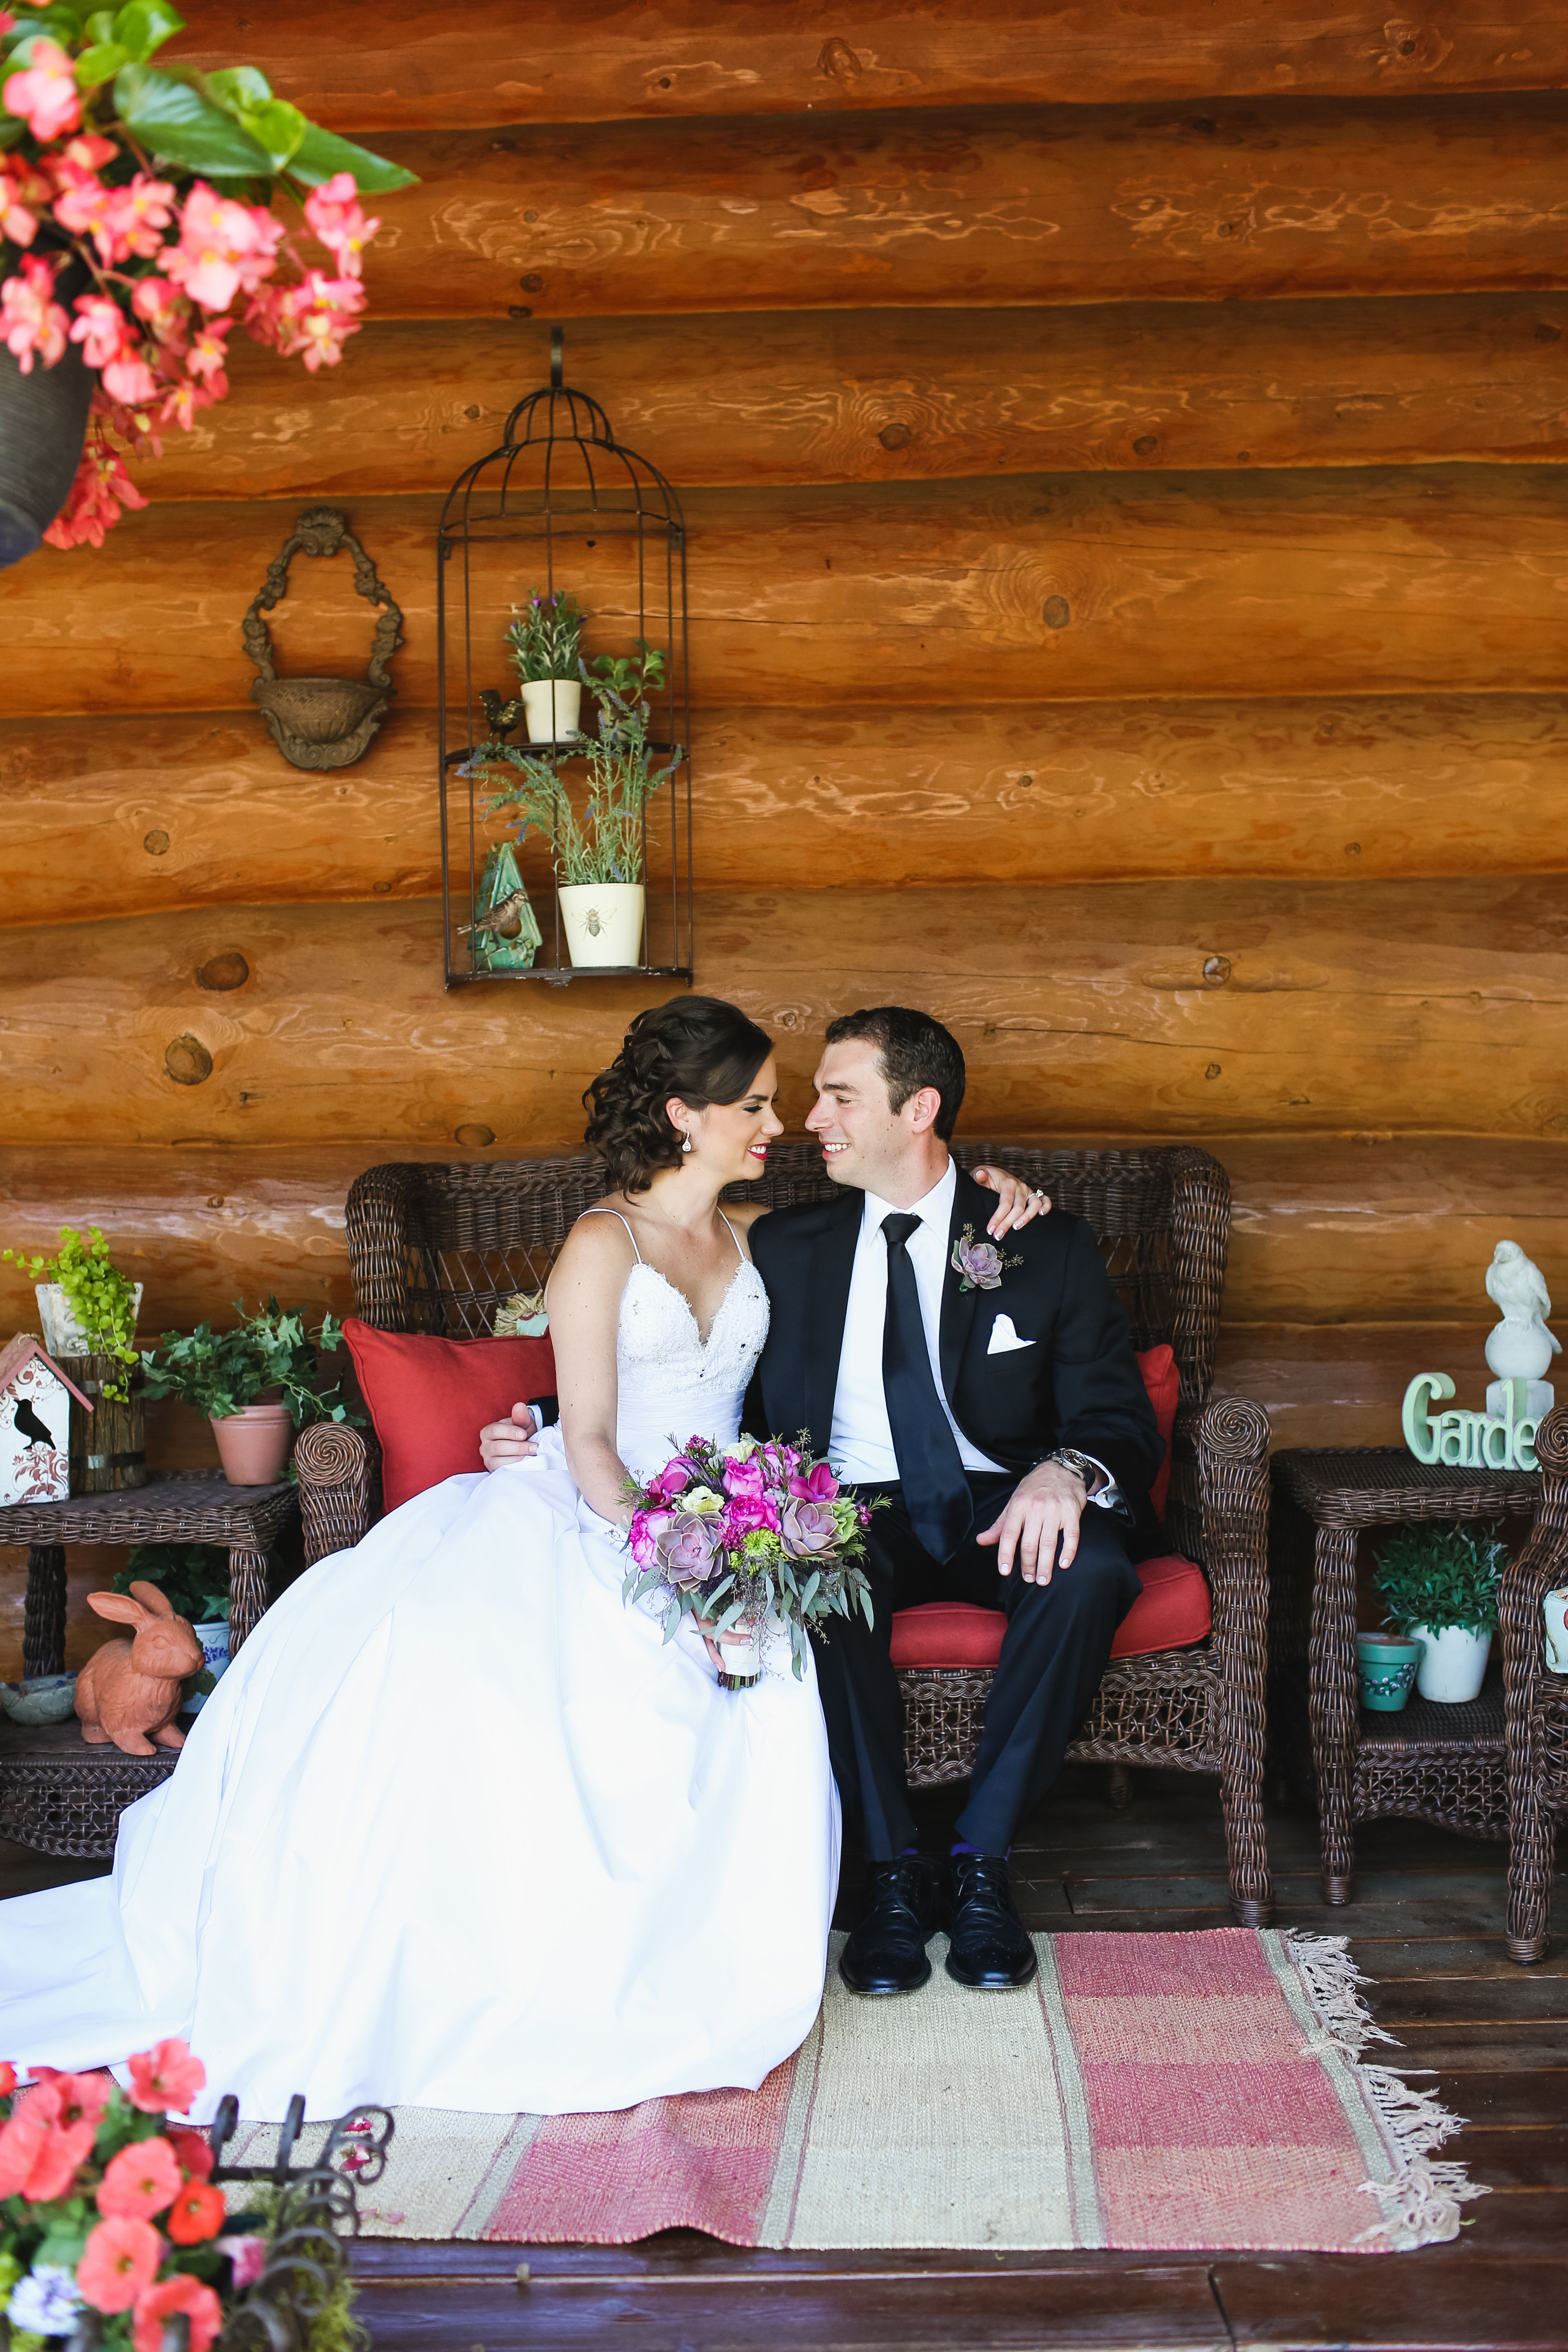 A Rustic Bed and Breakfast Wedding at Sunset Cove in